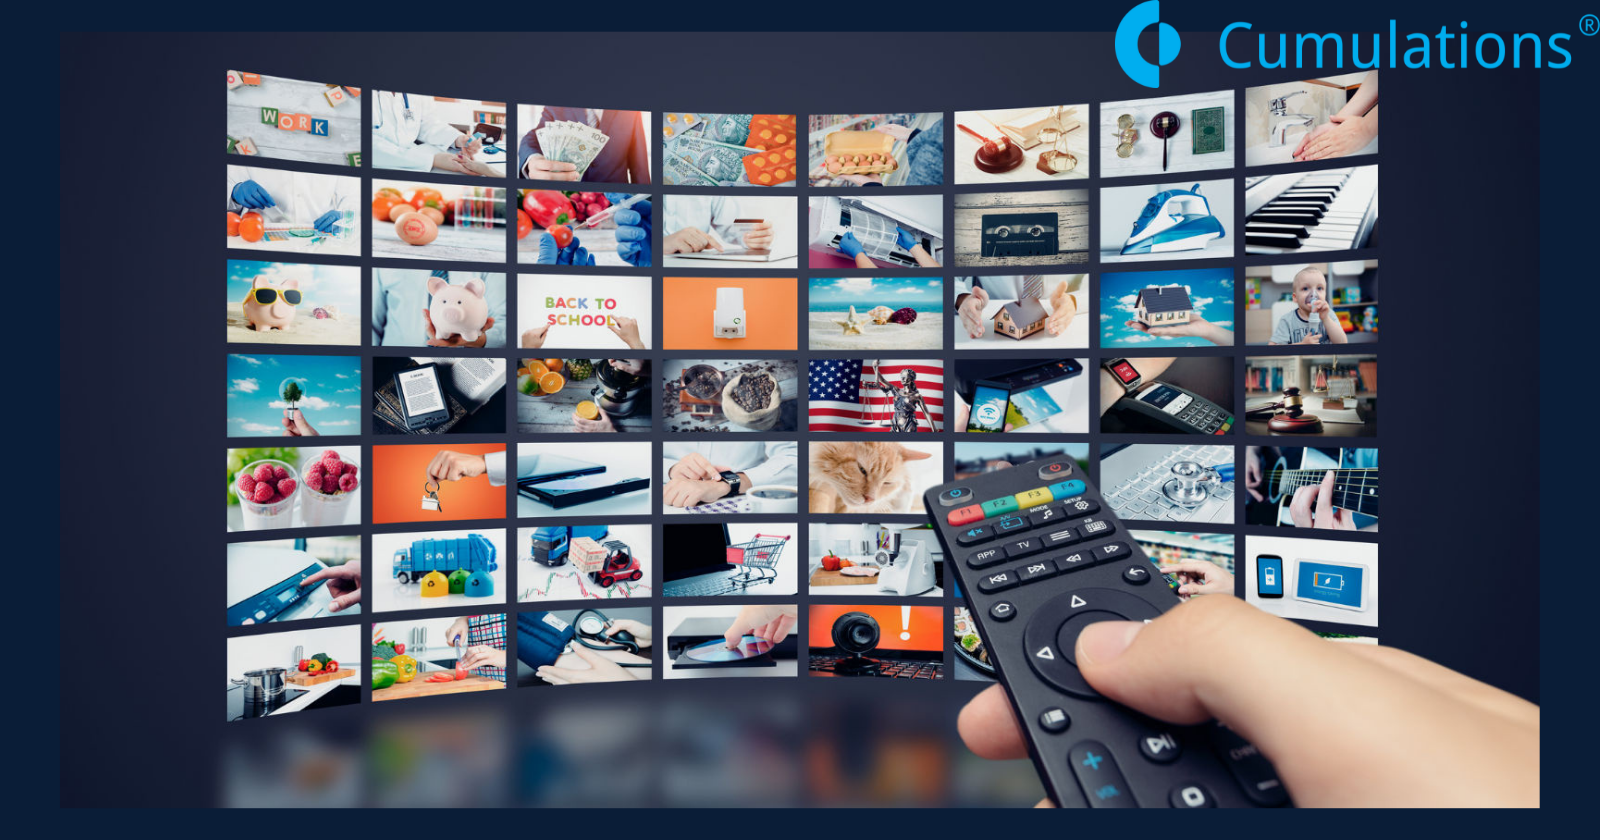 On-Demand Video Streaming App Development - Android & iOS